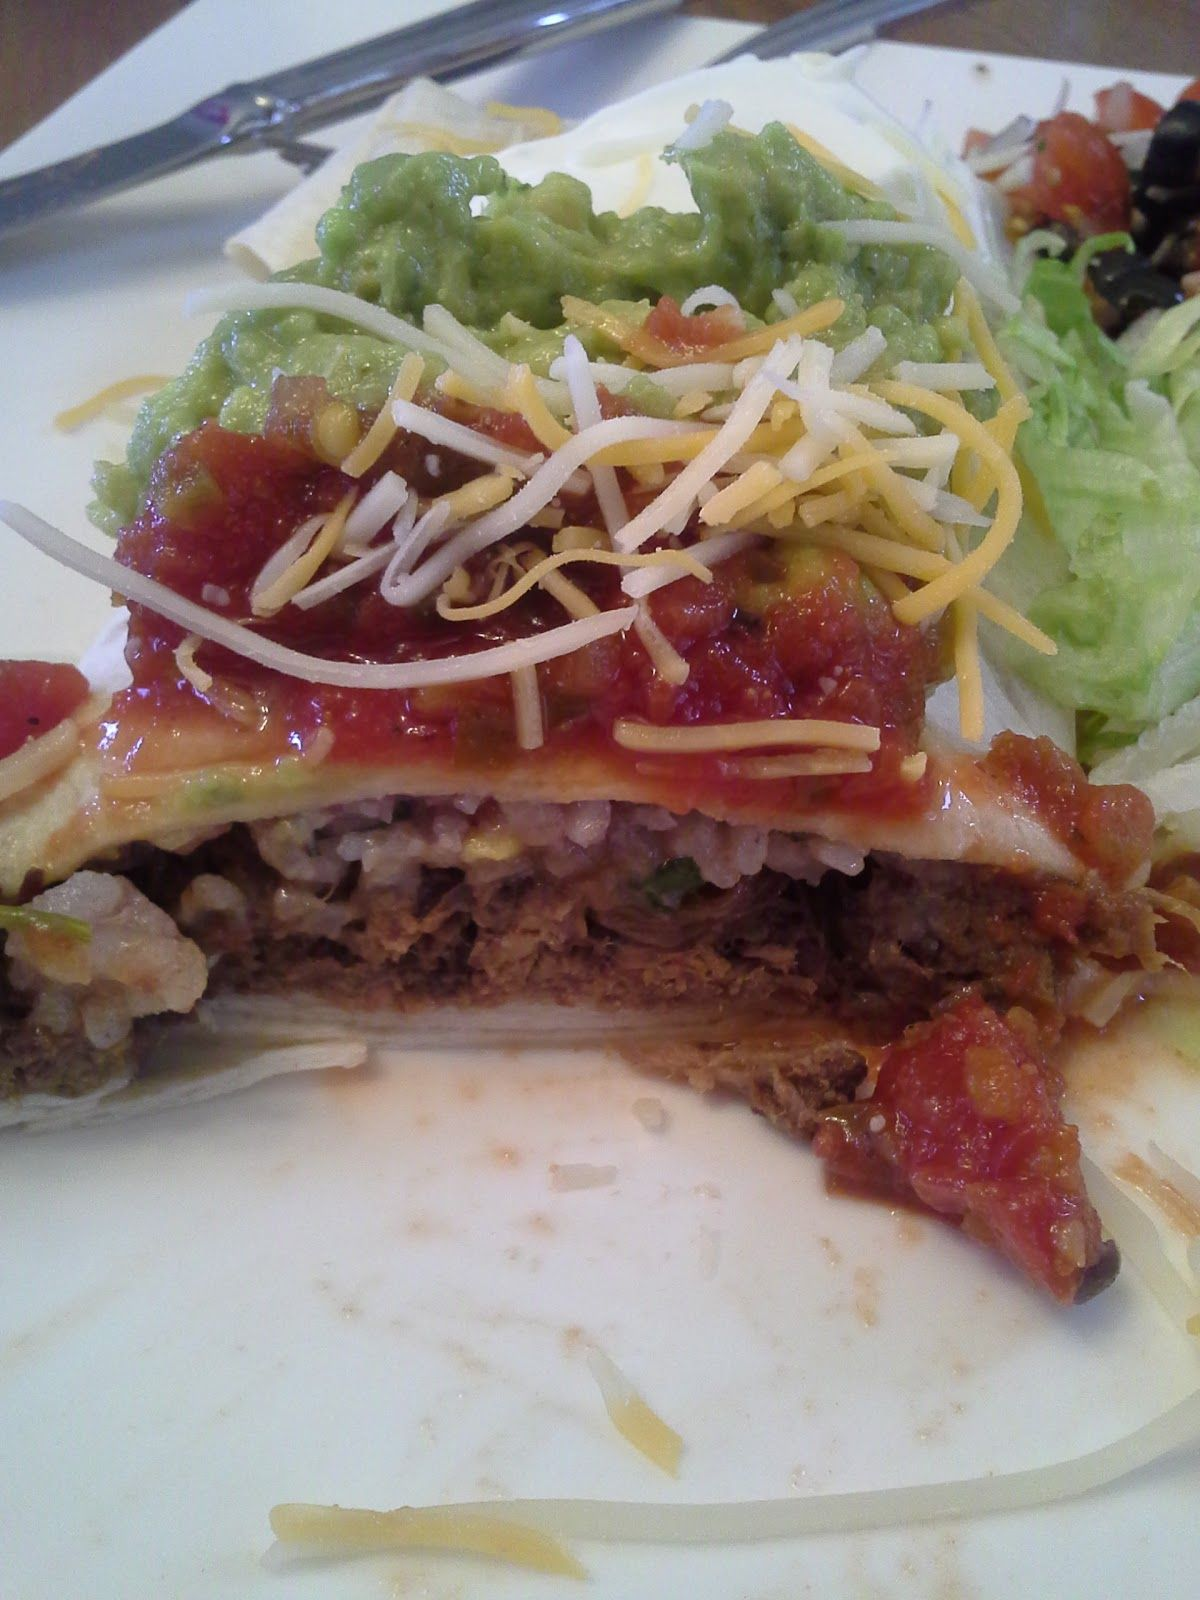 You Have To Cook It Right Venison Burrito Venison Game Food Cooking